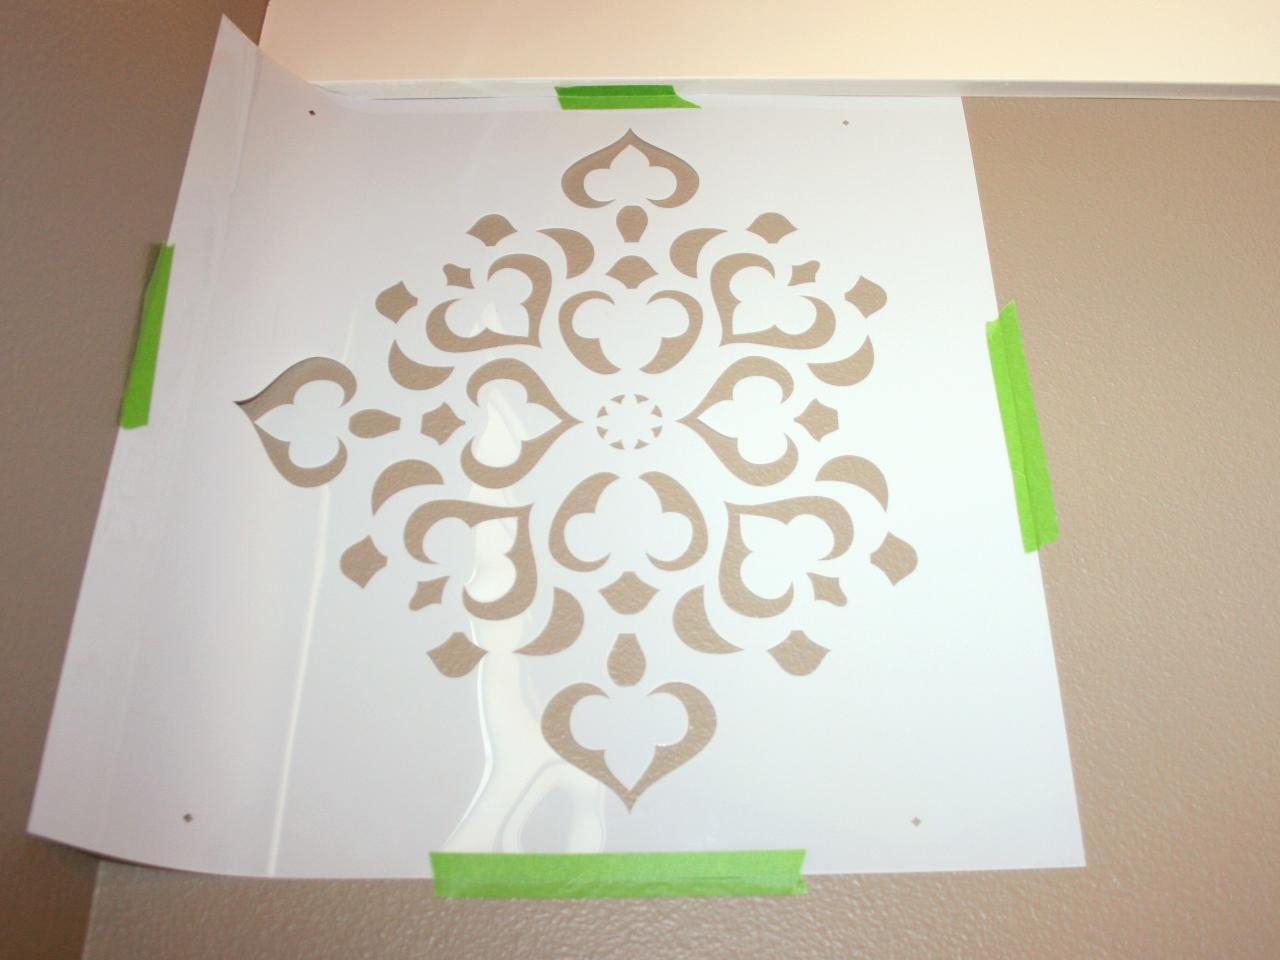 How To Stencil A Focal Wall | Hgtv Inside Space Stencils For Walls (View 8 of 20)